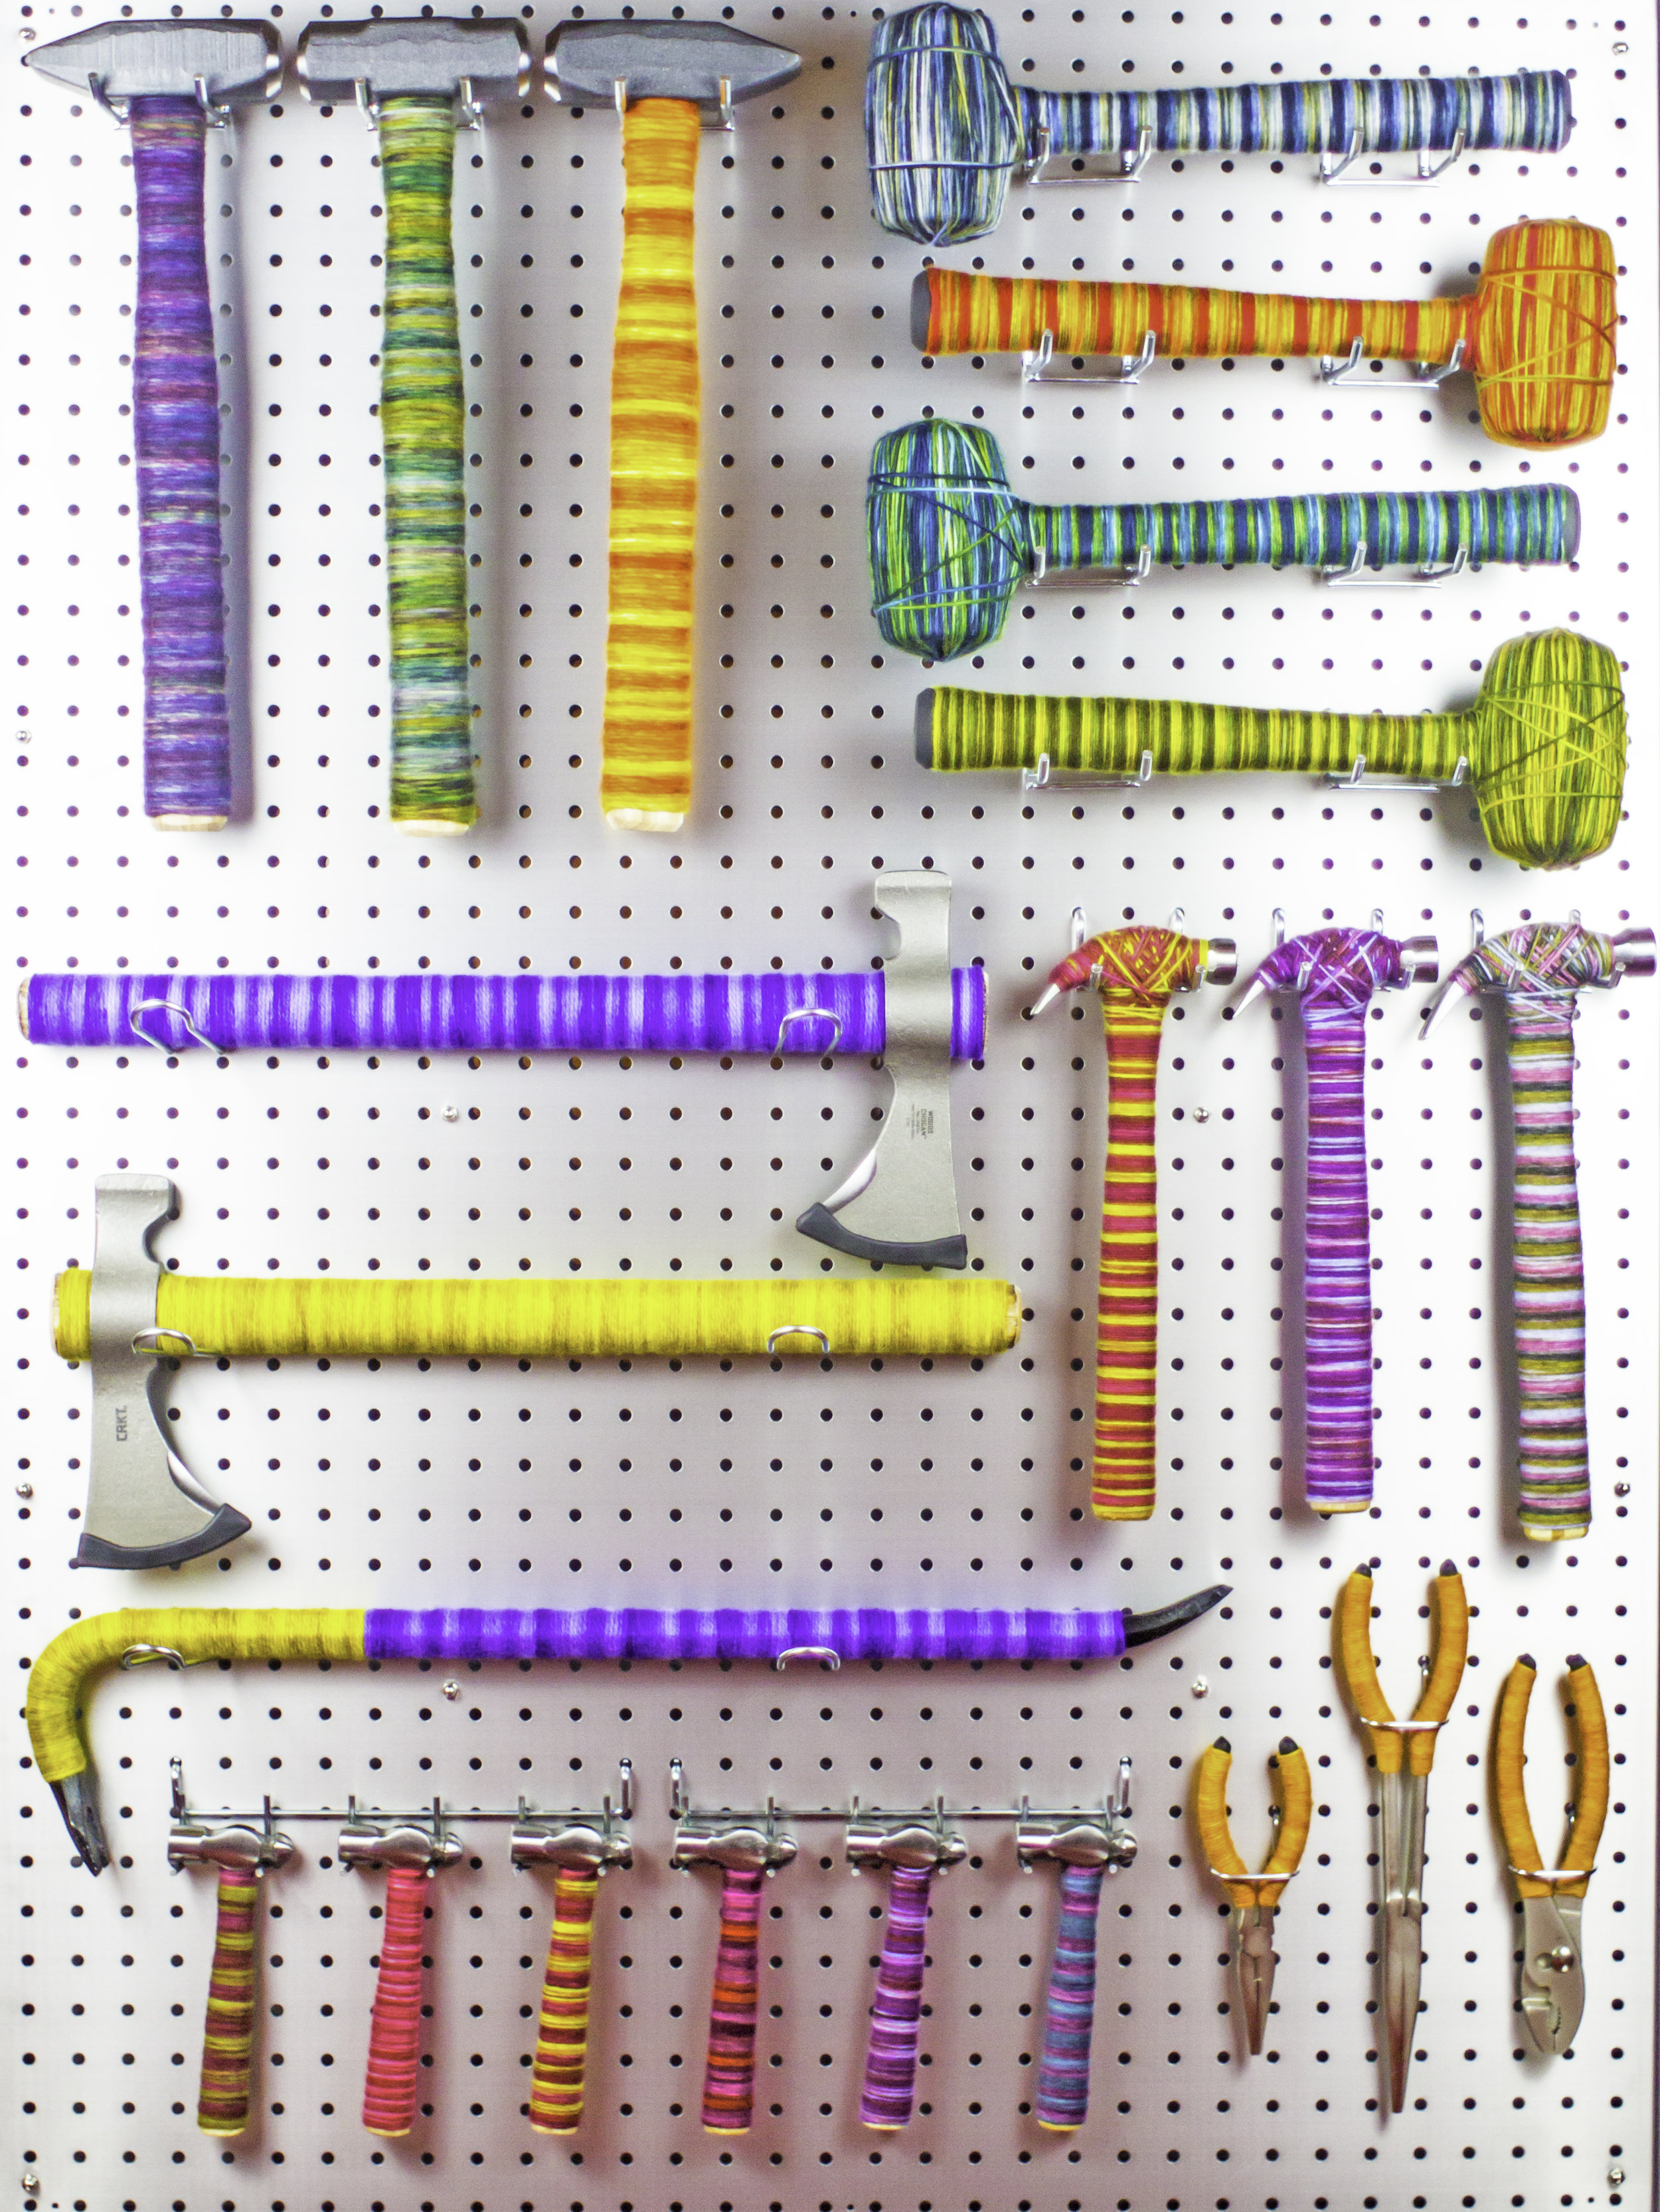 Tools, In Sheep's Clothing.JPG